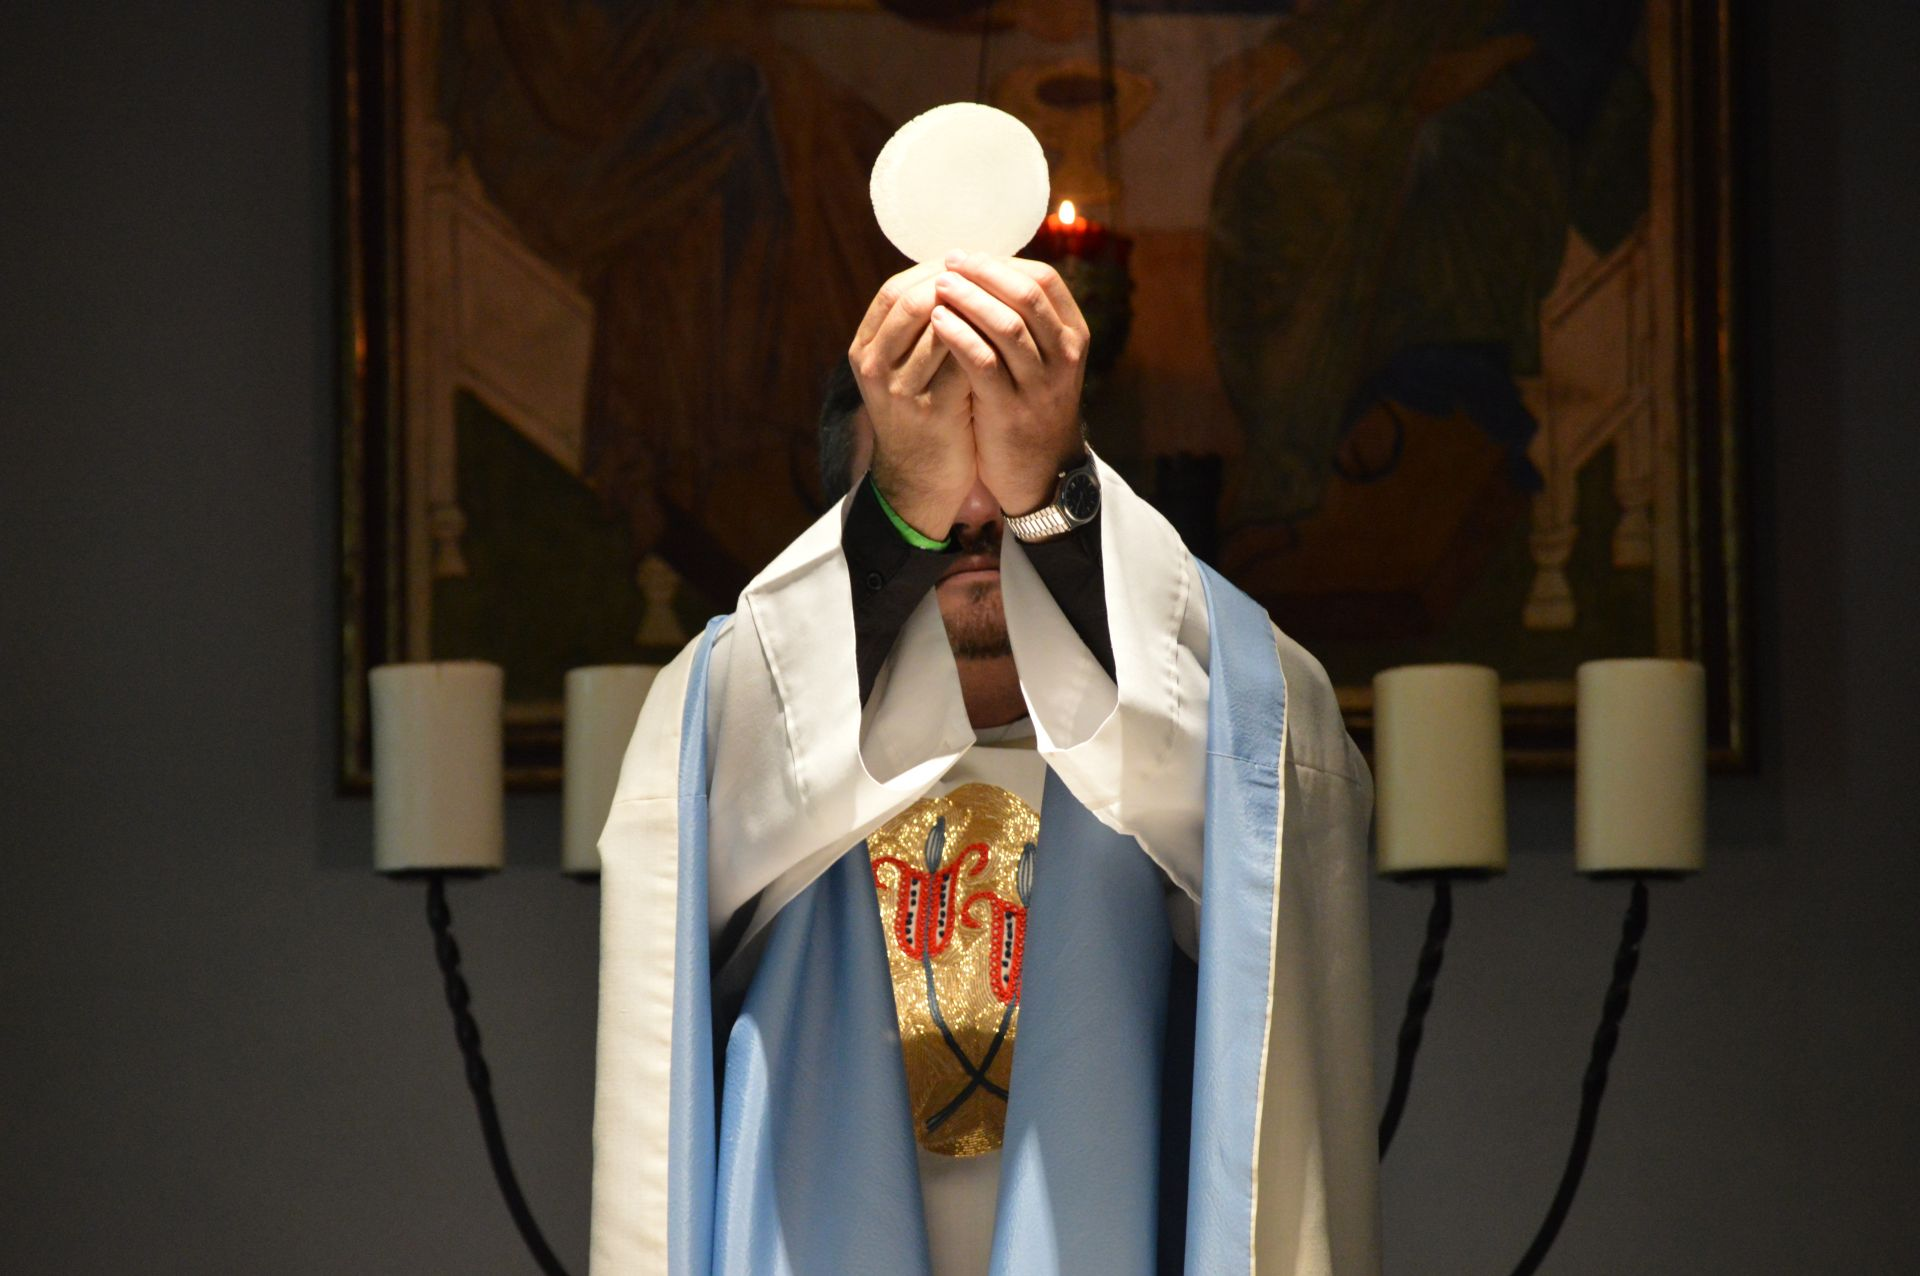 eucharist, hands, love, jesus, priest, consecration, body, altar, holy, spirit, mass, visitors, consecrated, care